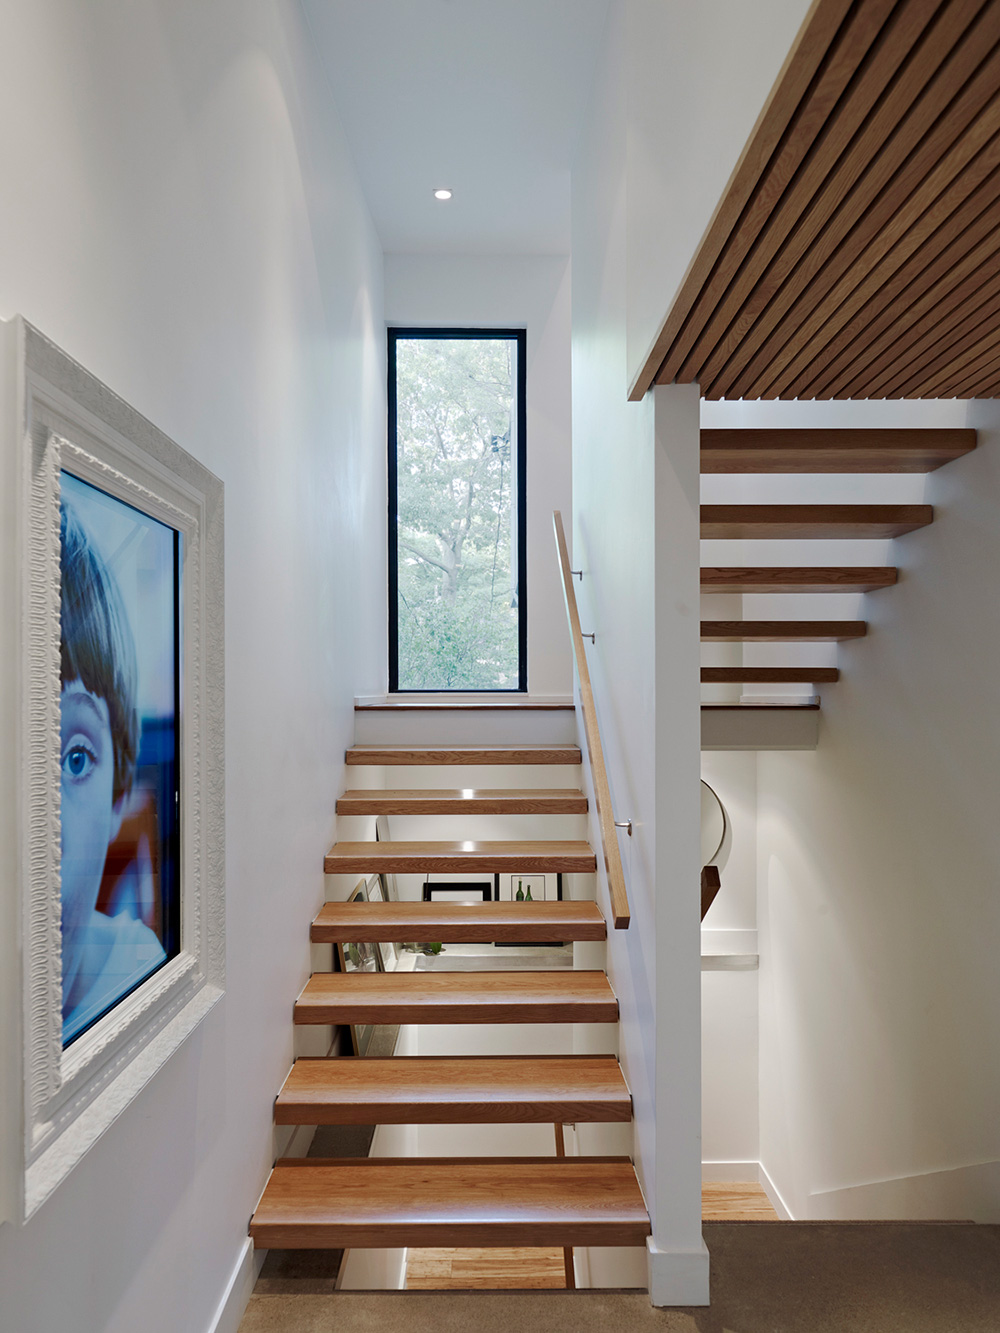 Staircase with wood tread open risers and crafted wood handrail. Large picture window on landing and a wood slat ceiling